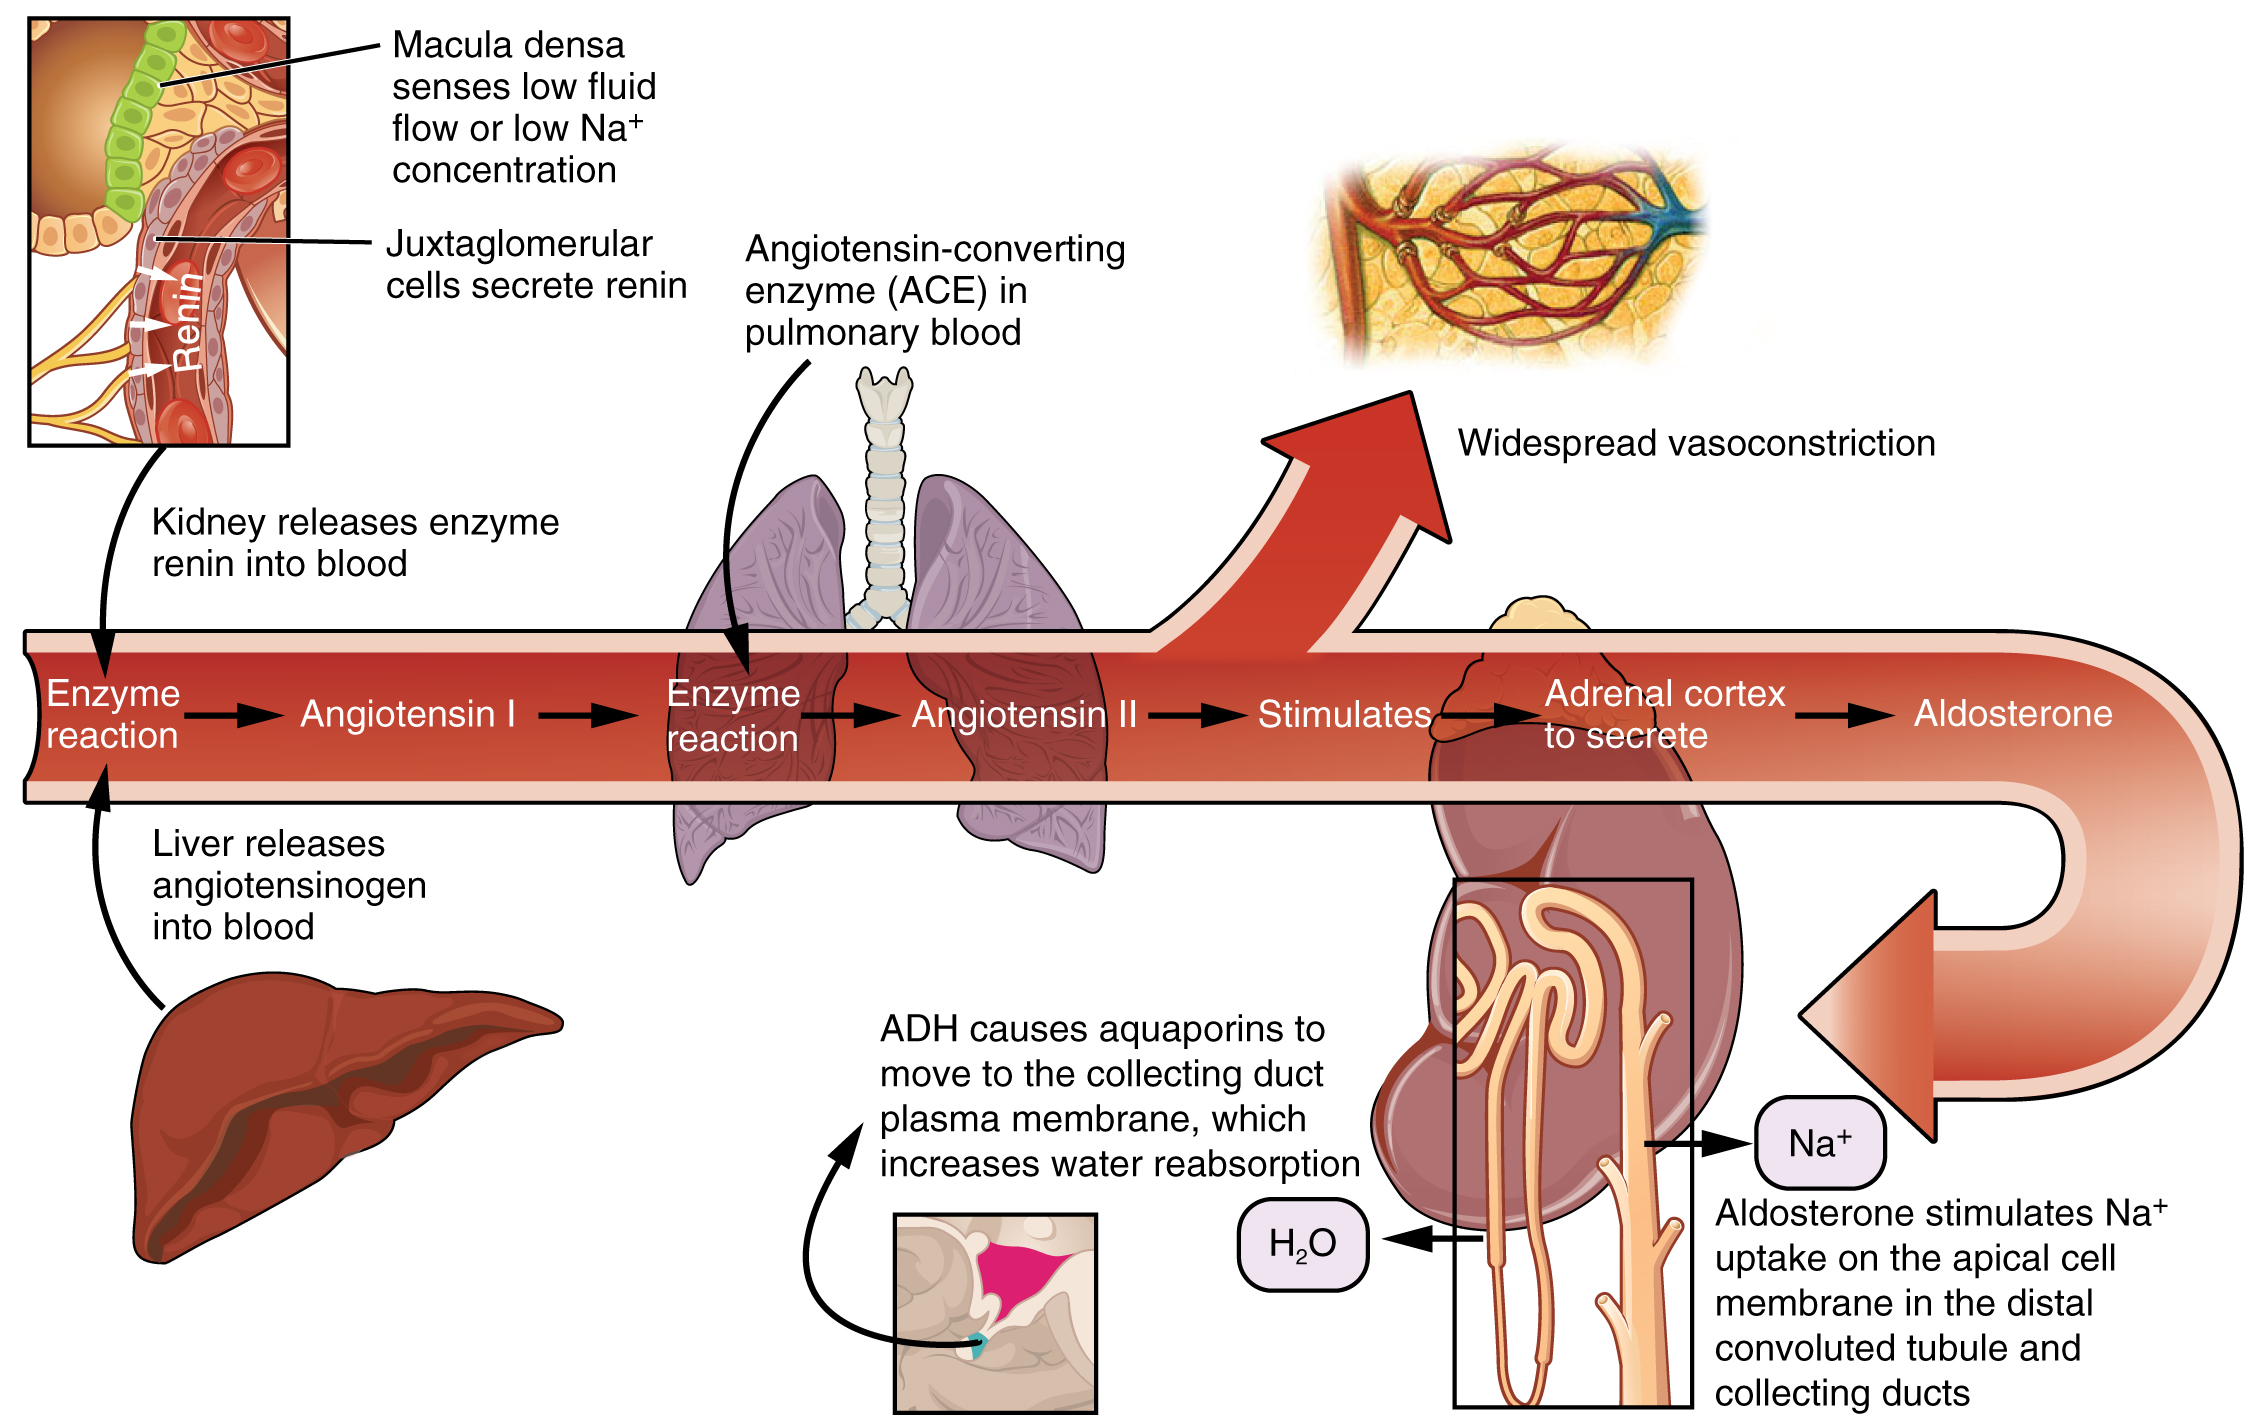 Microscopic Anatomy of the Kidney · Anatomy and Physiology